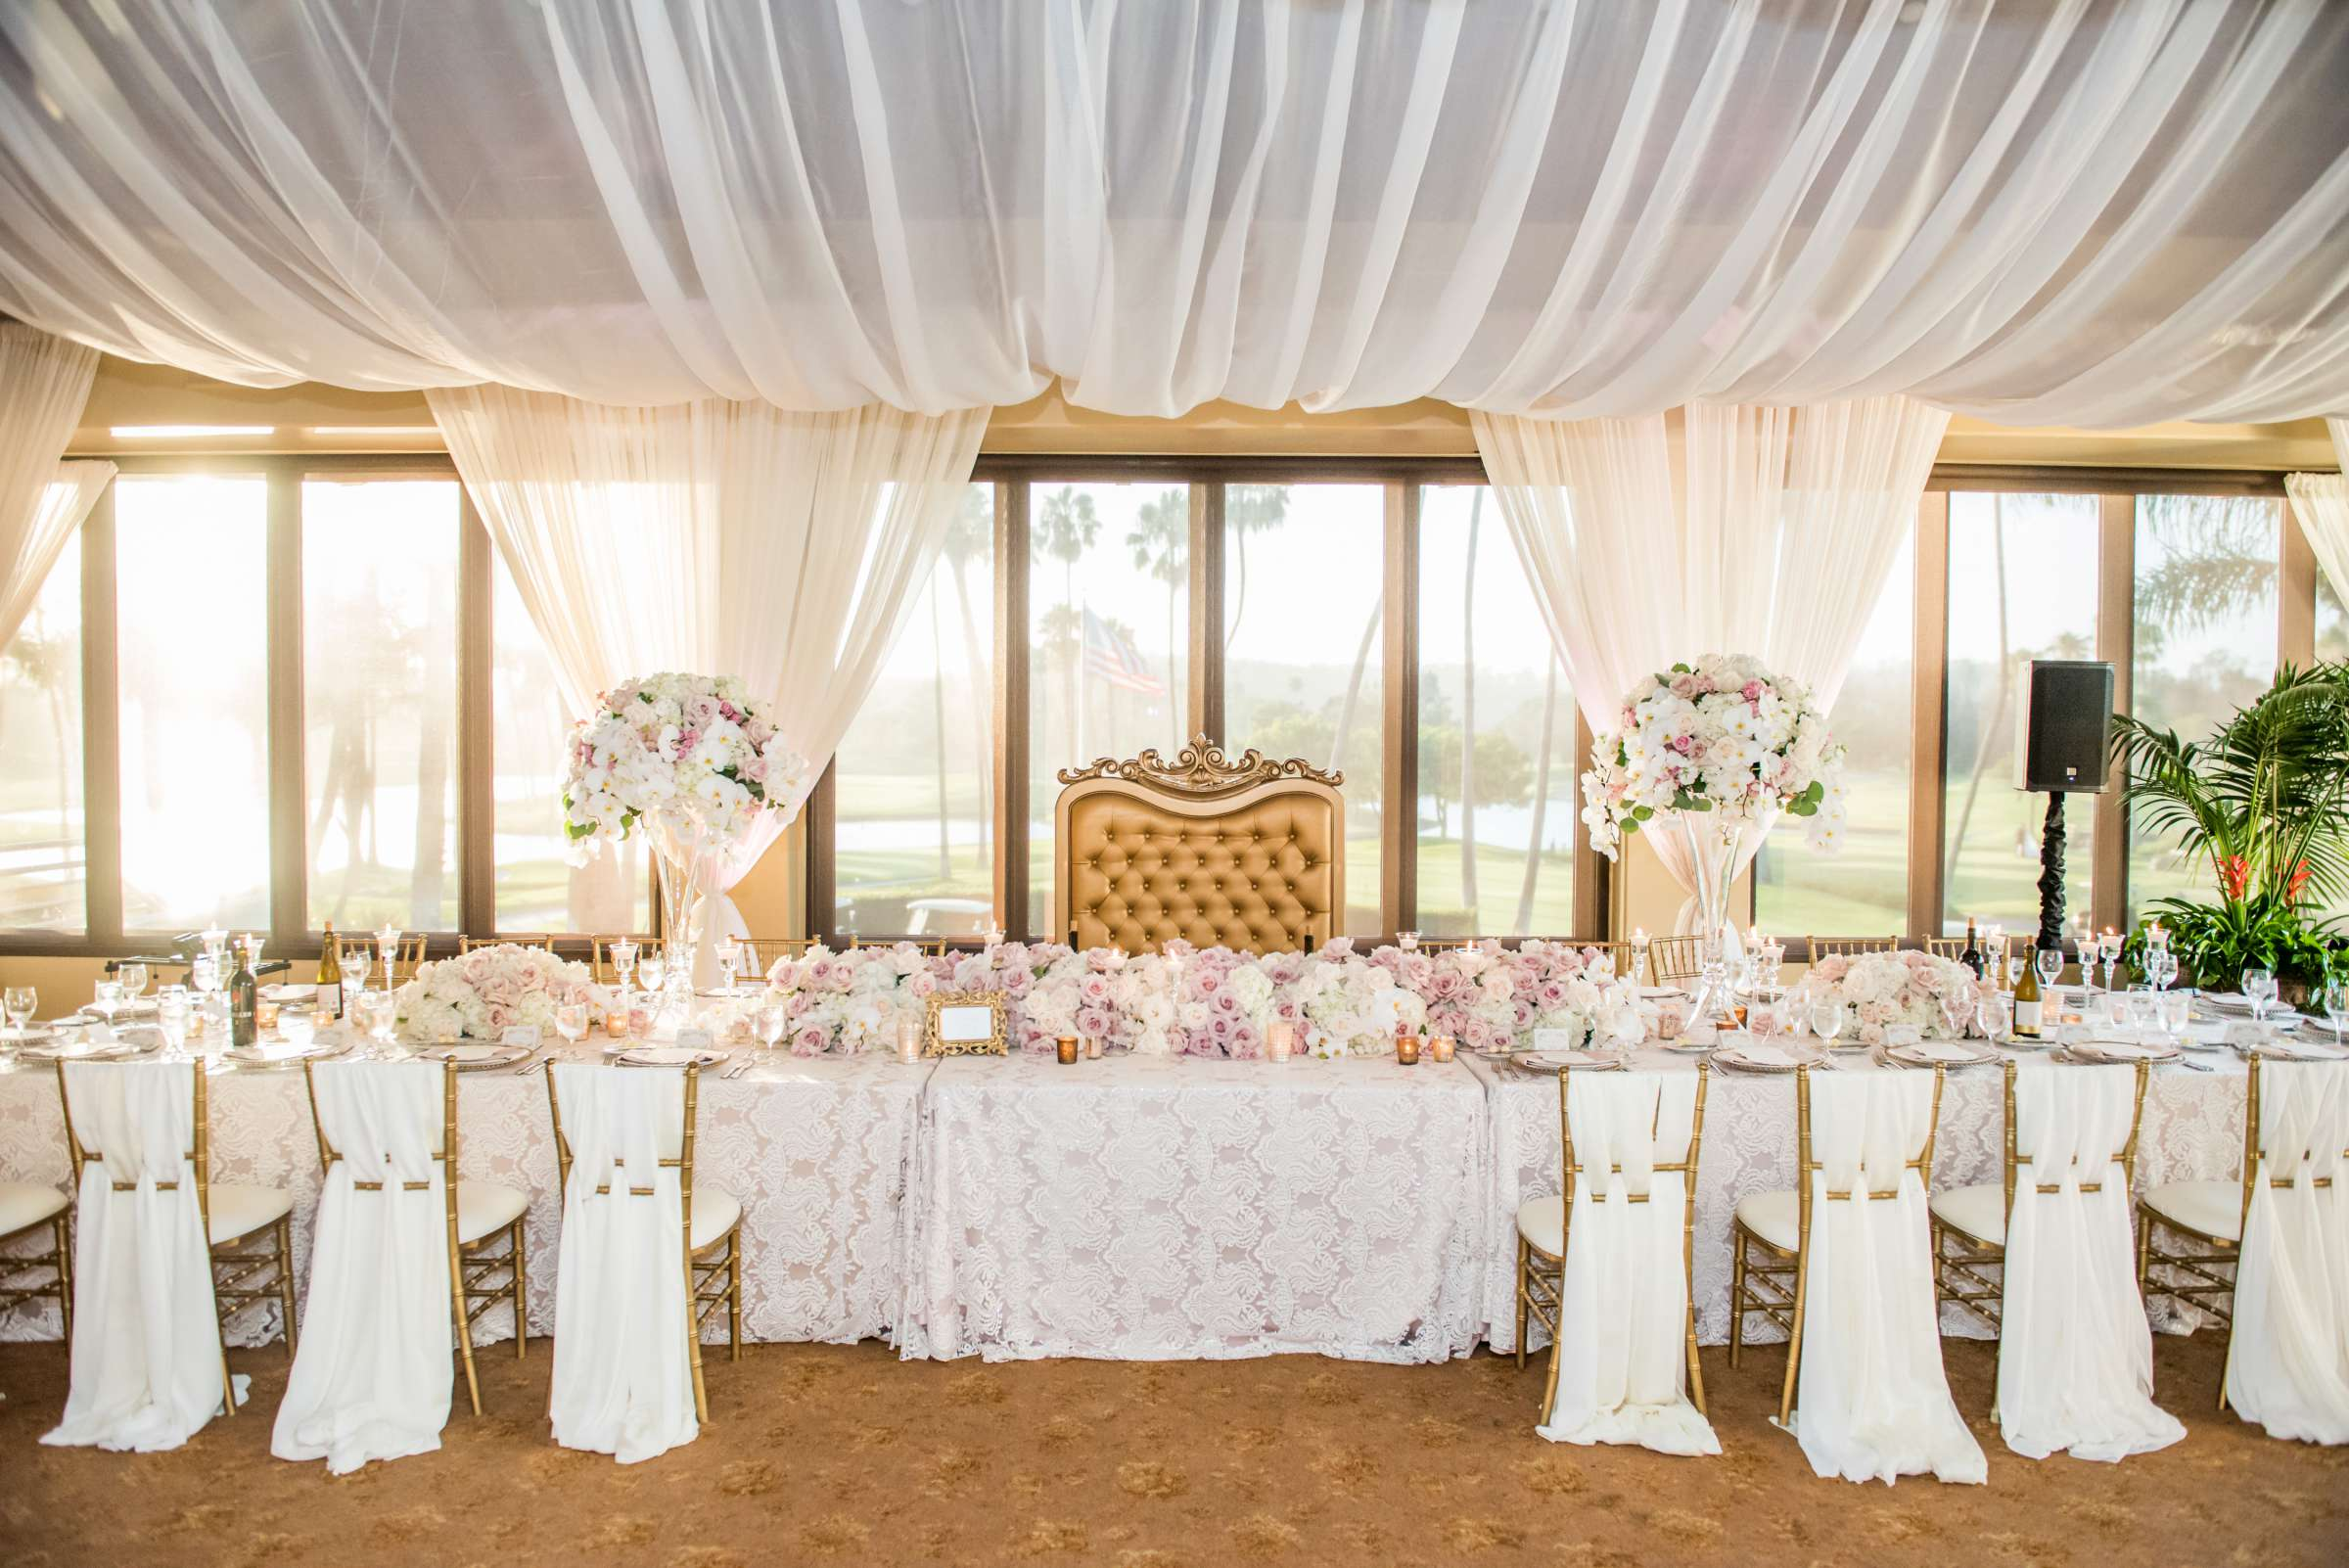 Fairbanks Ranch Country Club Wedding coordinated by Monarch Weddings, Gabriella and Kyle Wedding Photo #213 by True Photography